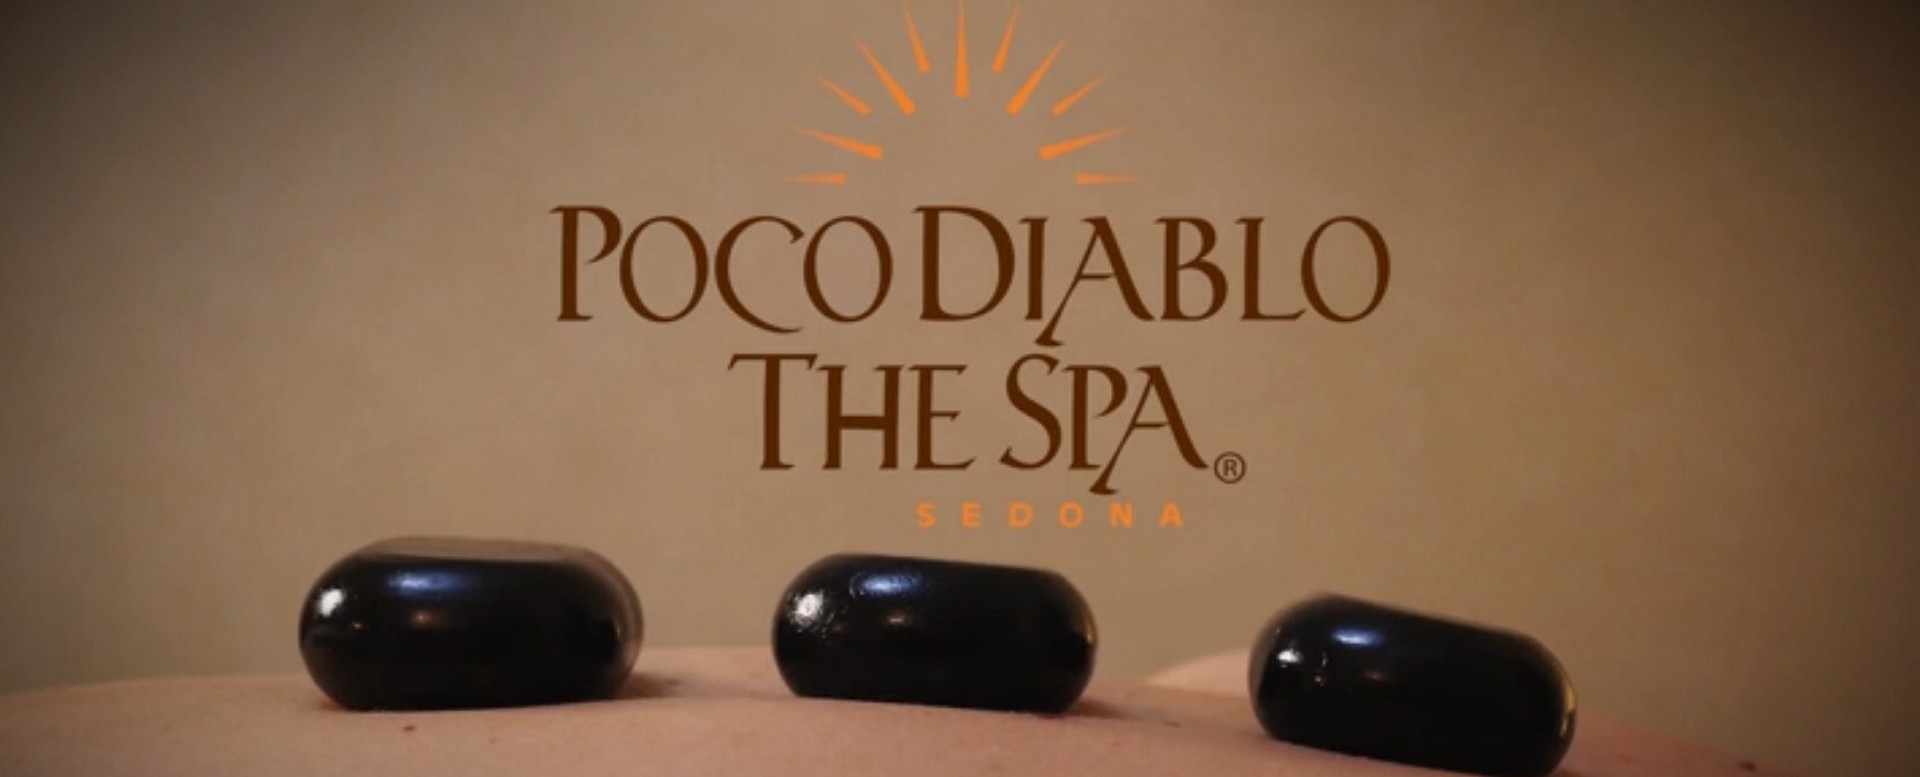 Poco Diablo The Spa